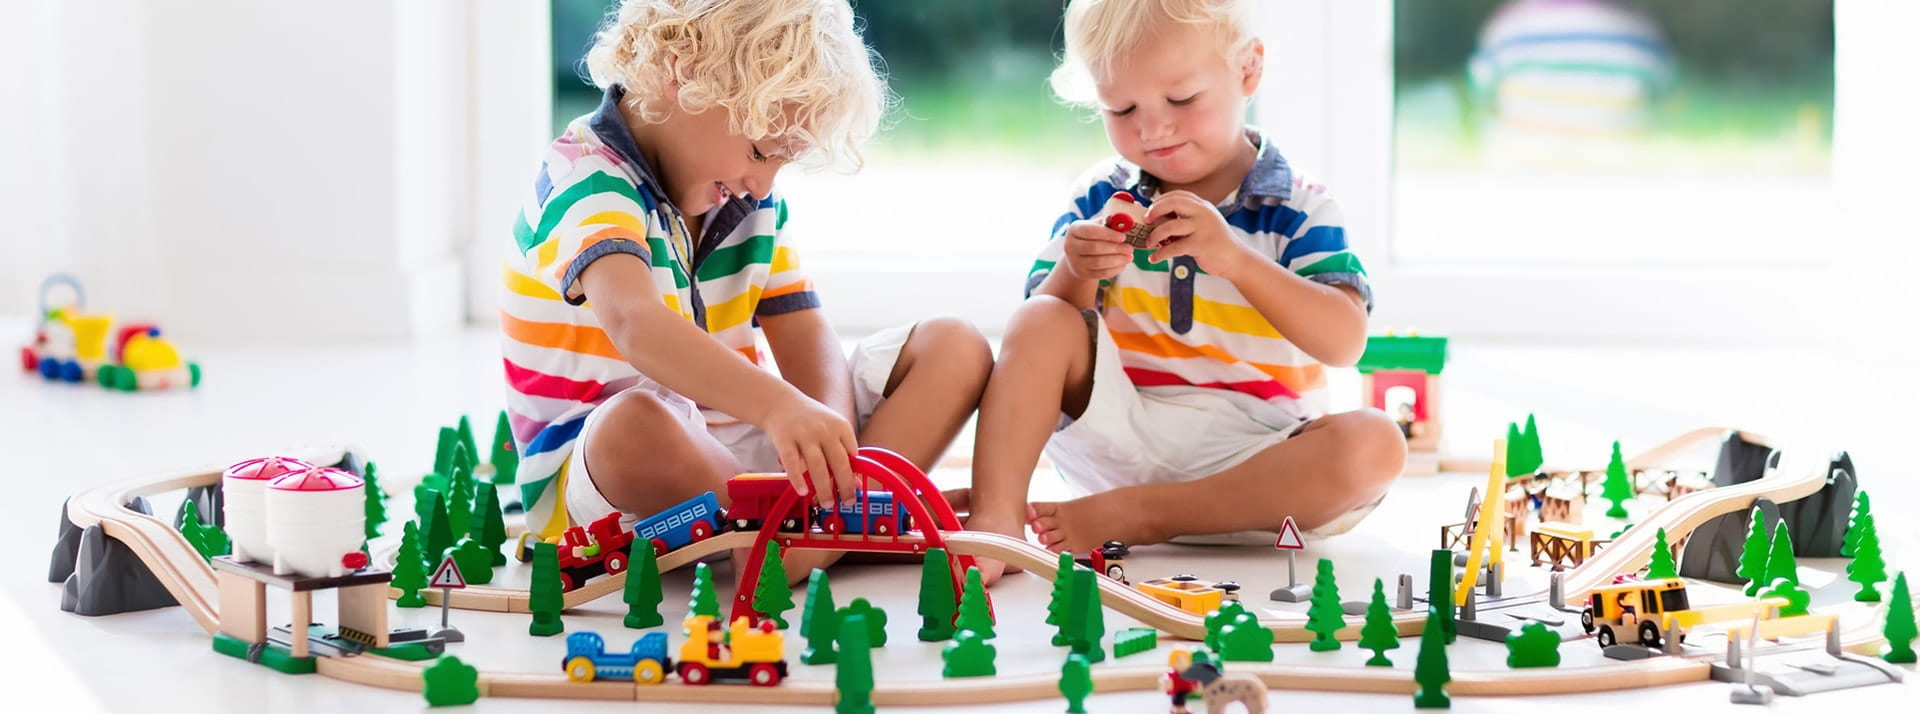 children playing with wooden railway